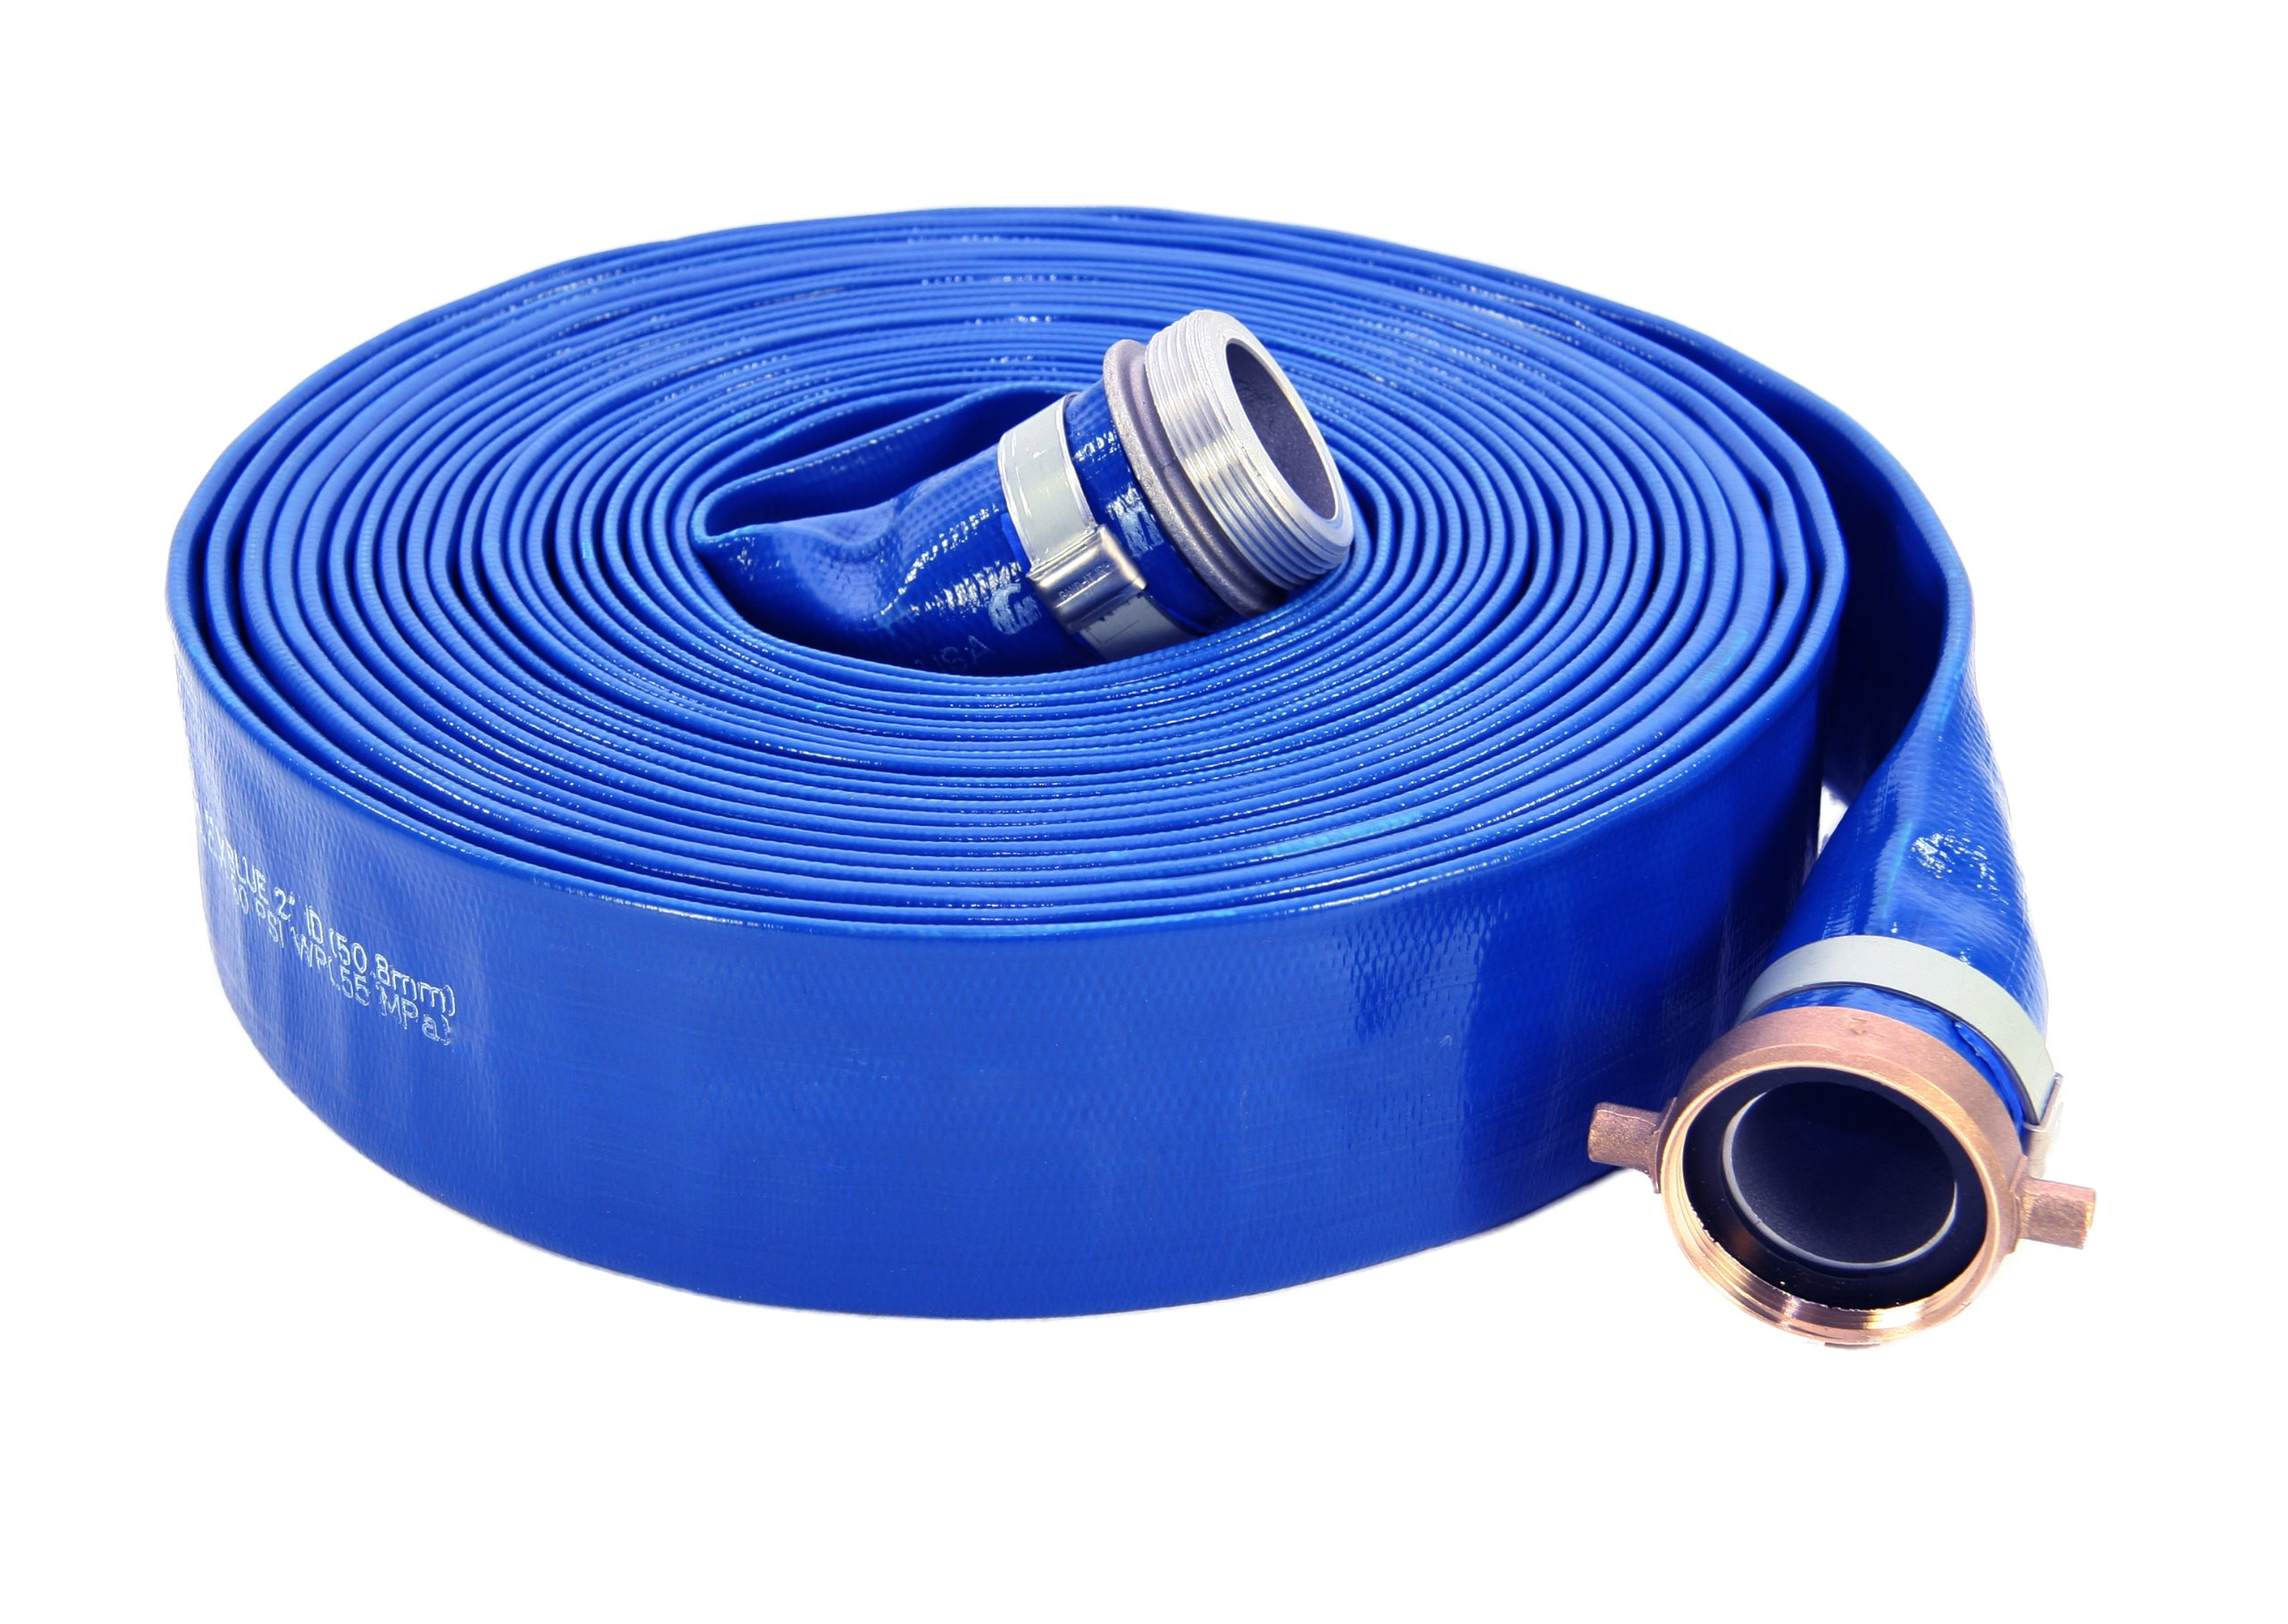 Abbott Rubber PVC Discharge Hose Assembly, Blue, 3'' Male X Female NPSM, 60 psi Max Pressure, 50' Length, 3'' ID by Abbott Rubber